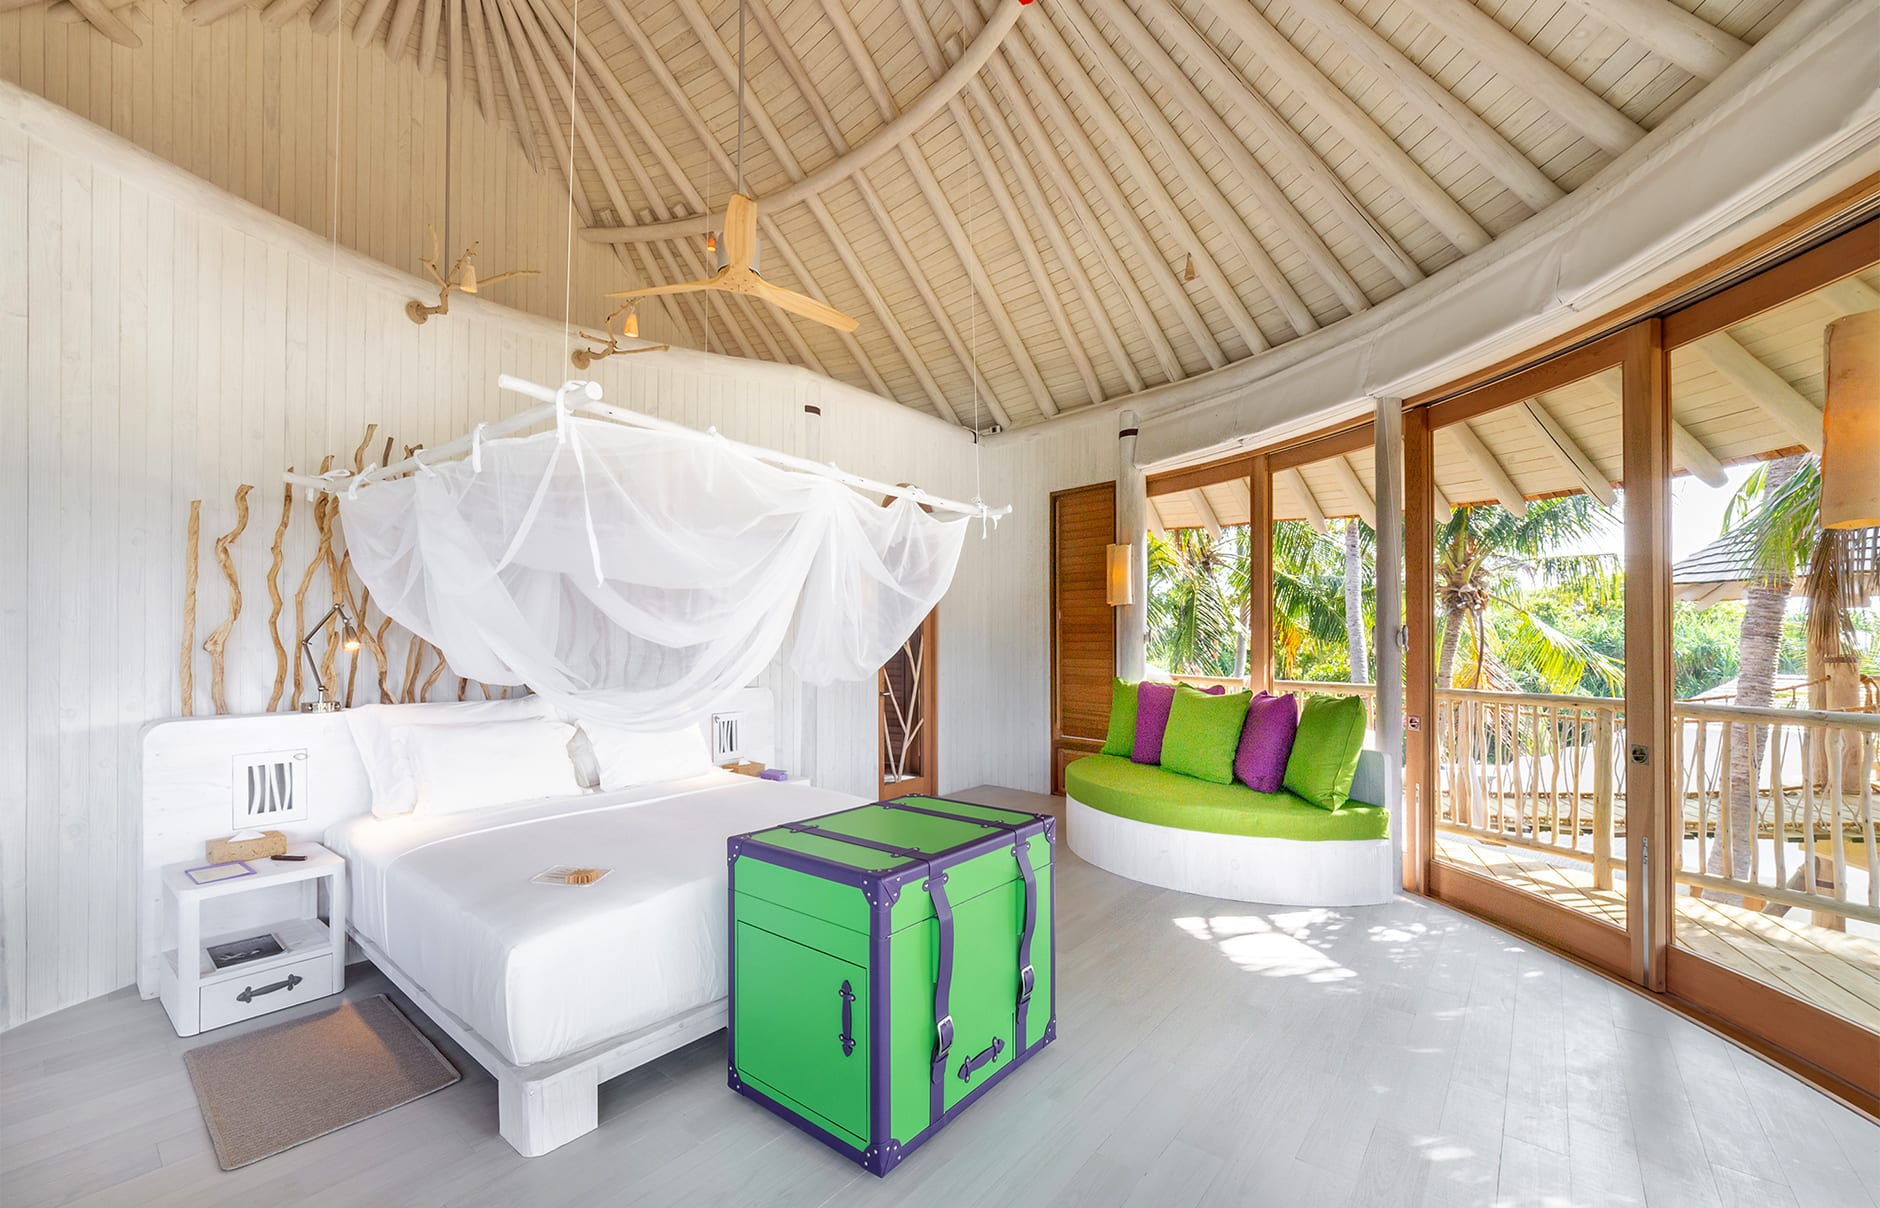 Soneva Jani, Medhufaru Island, Noonu Atoll, Maldives. Luxury Hotel Review by TravelPlusStyle. Photo © Soneva